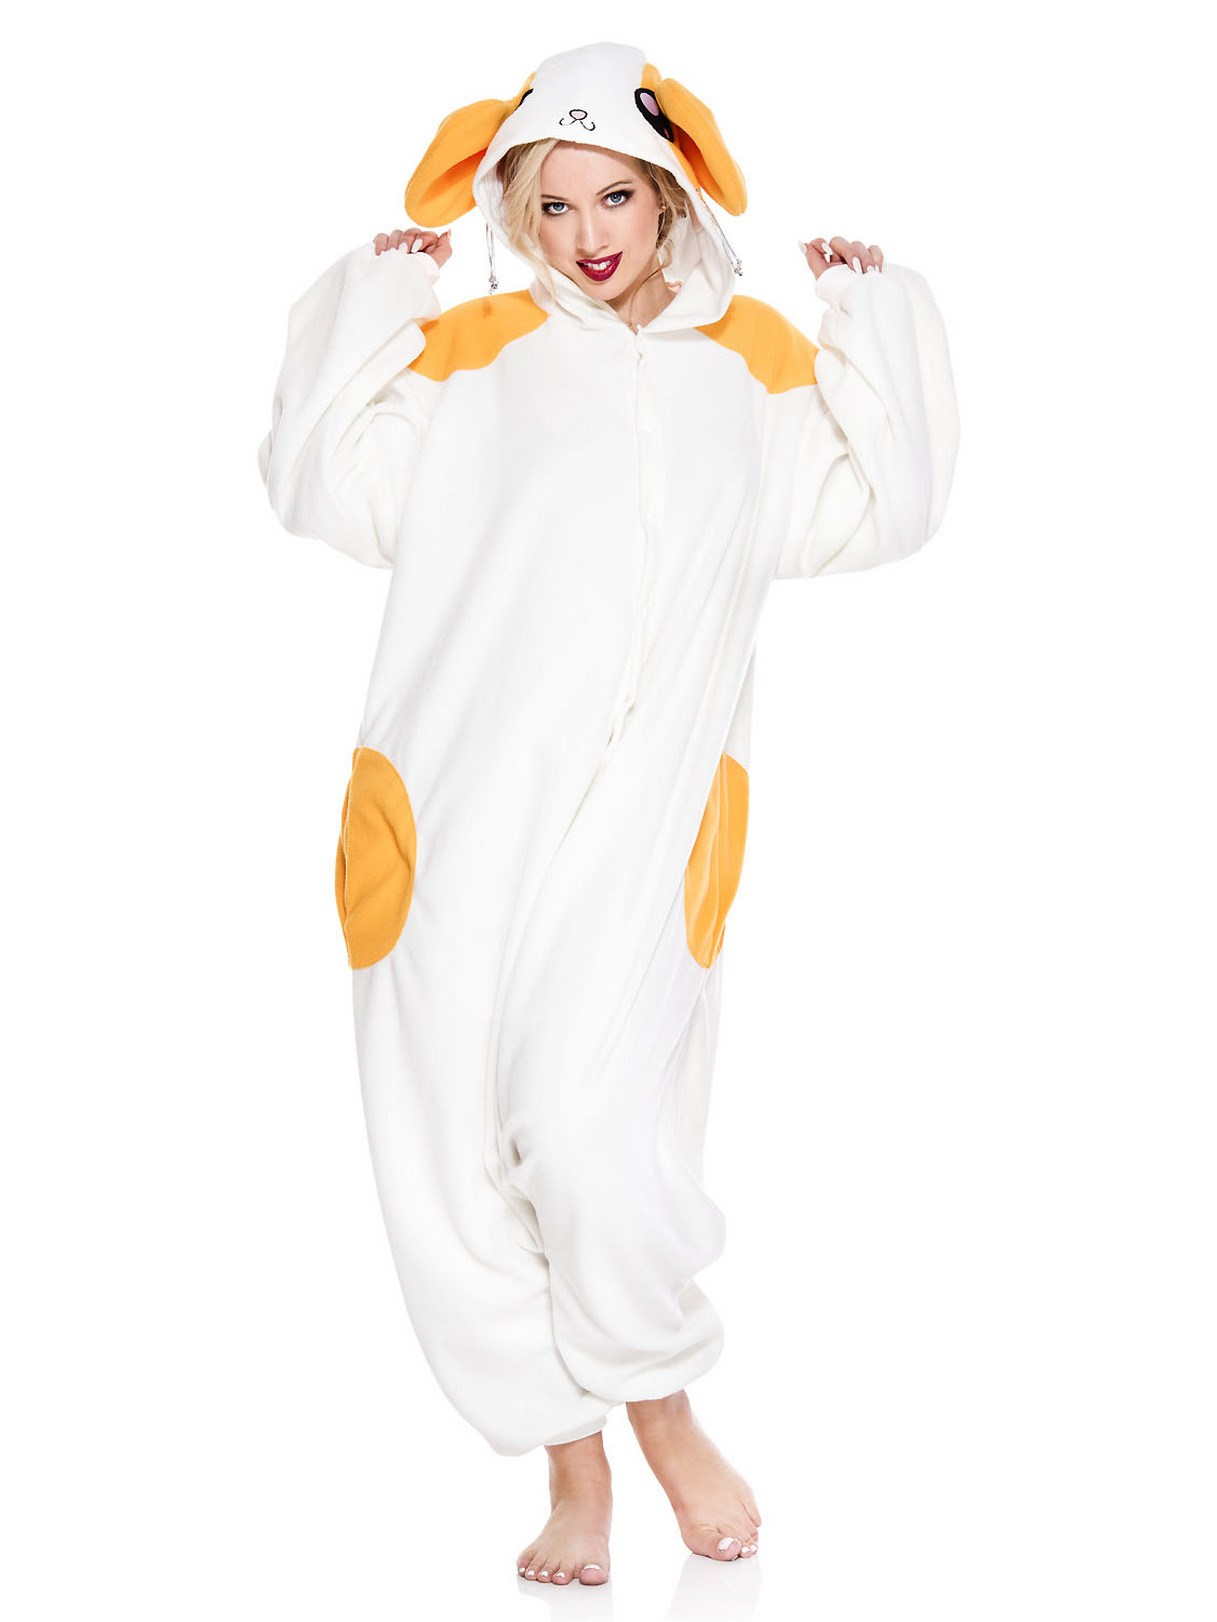 BCozy Hamster Adult Costume